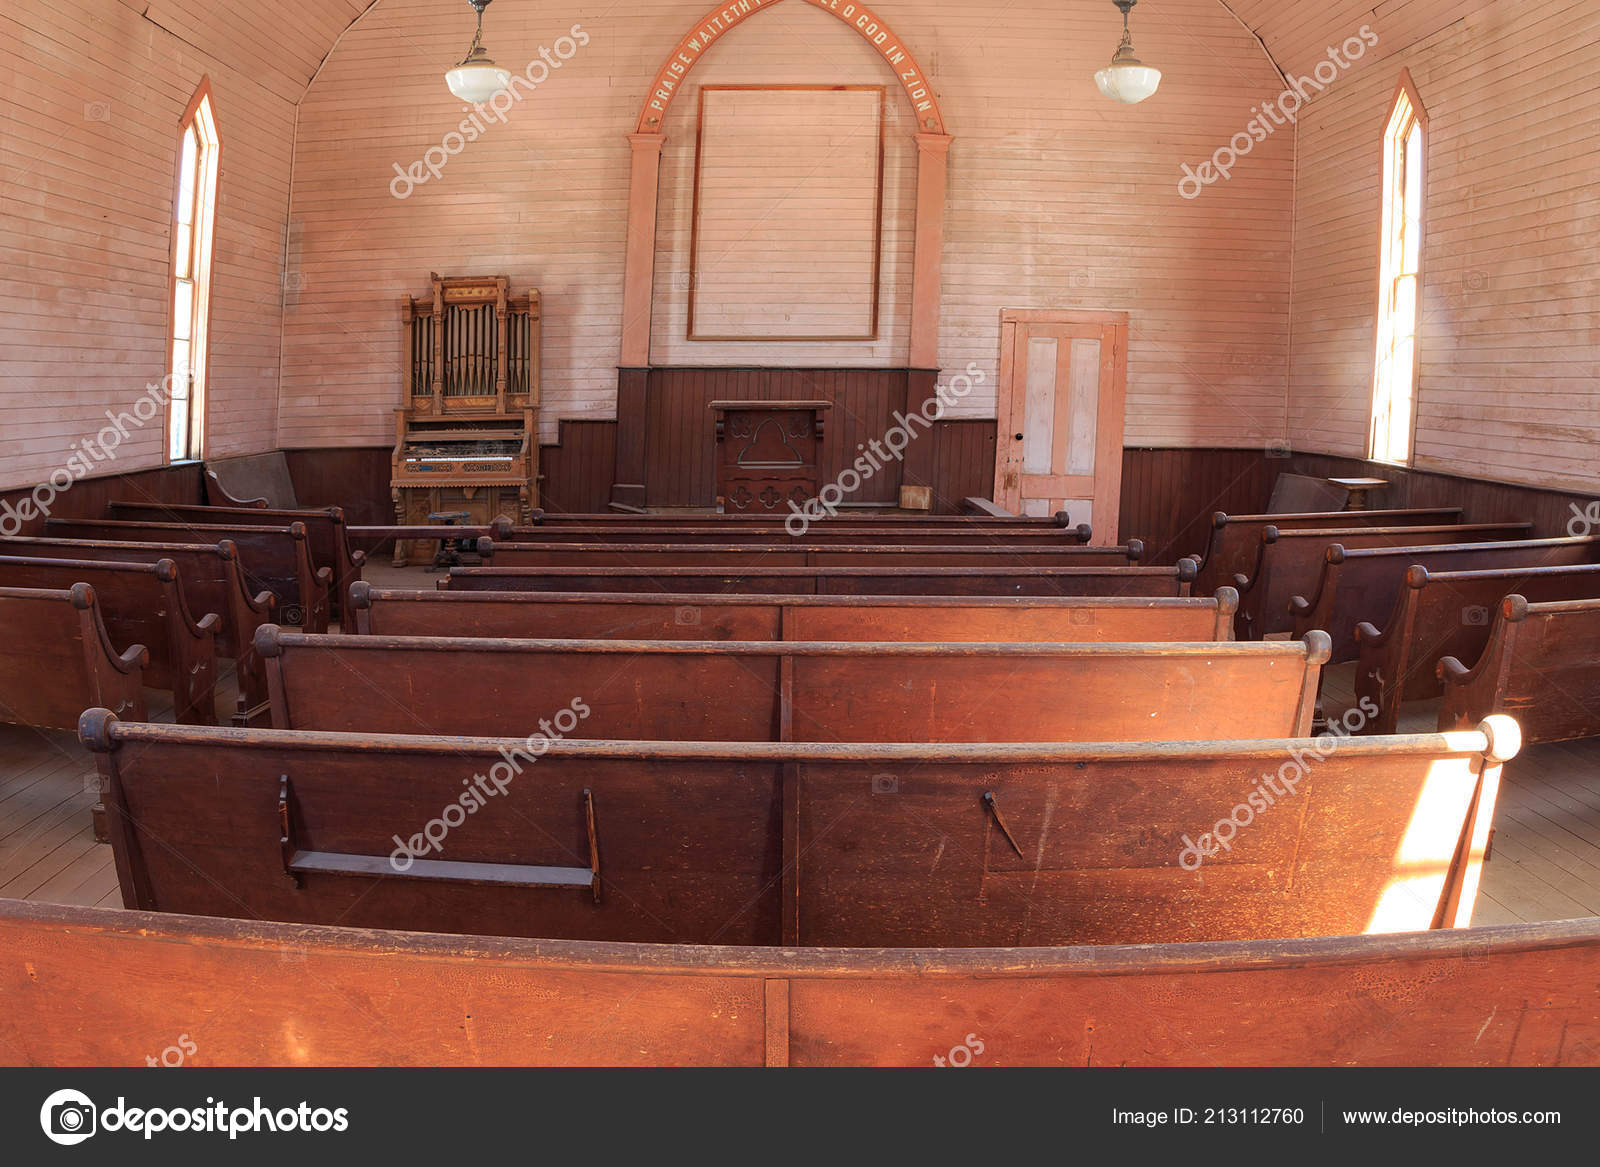 Stupendous Old Wooden Benches Church Usa Stock Photo Camellatalisay Diy Chair Ideas Camellatalisaycom